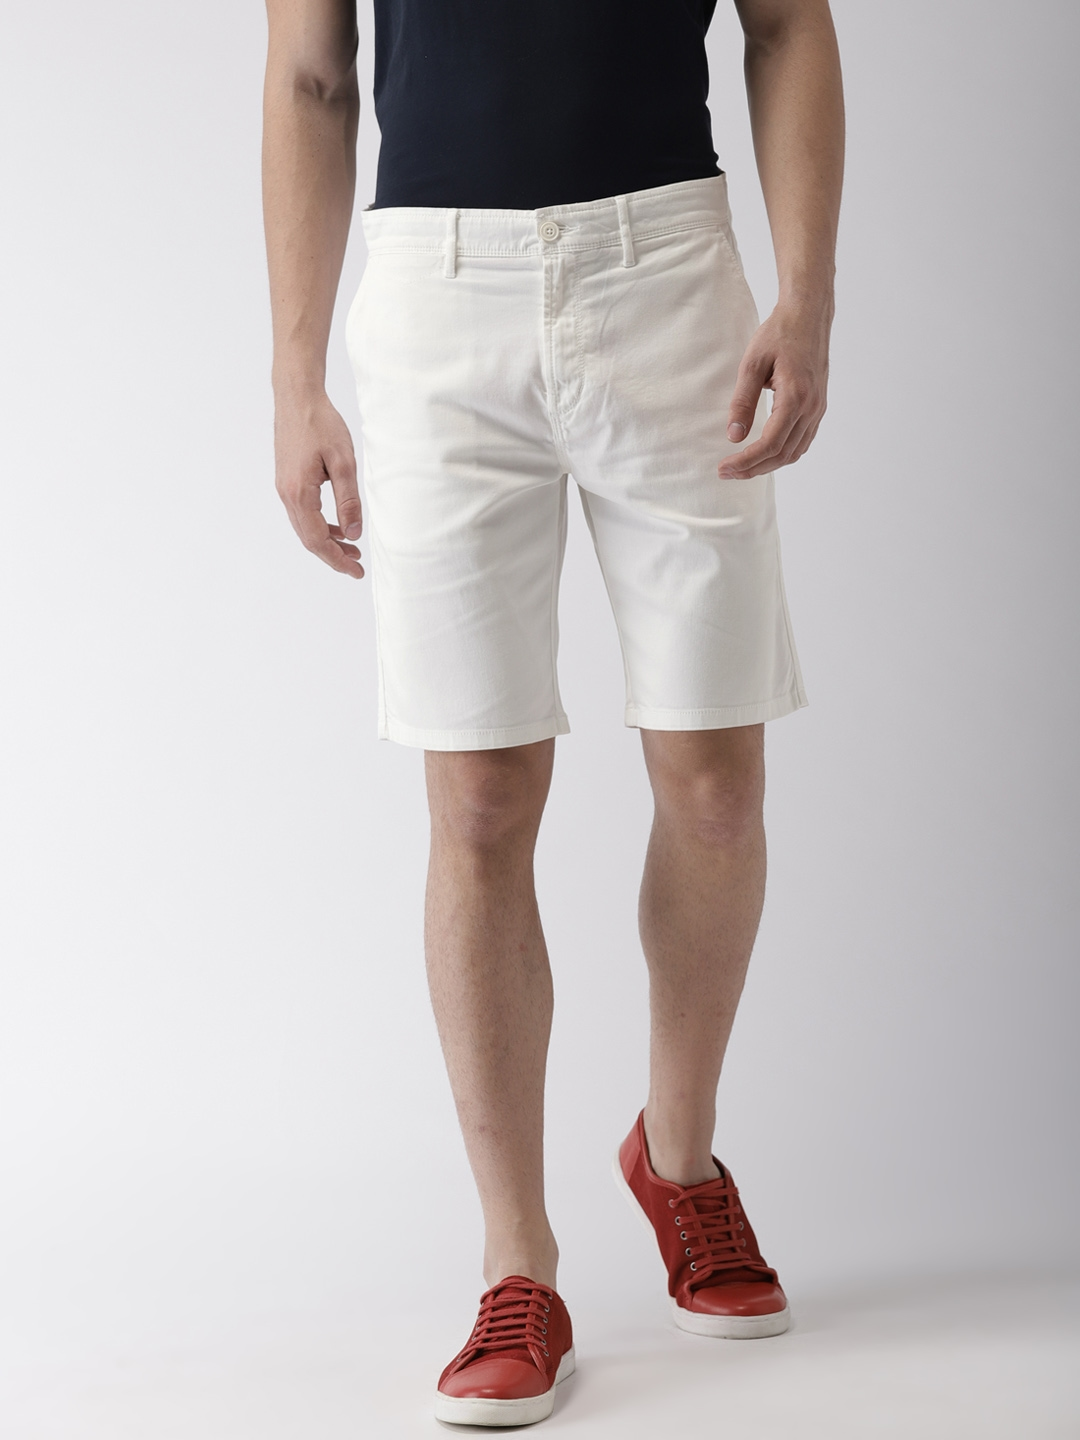 ce0aa6d8695c Buy Levis Men Off White Relaxed Tapered Fit Chino Shorts - Shorts ...